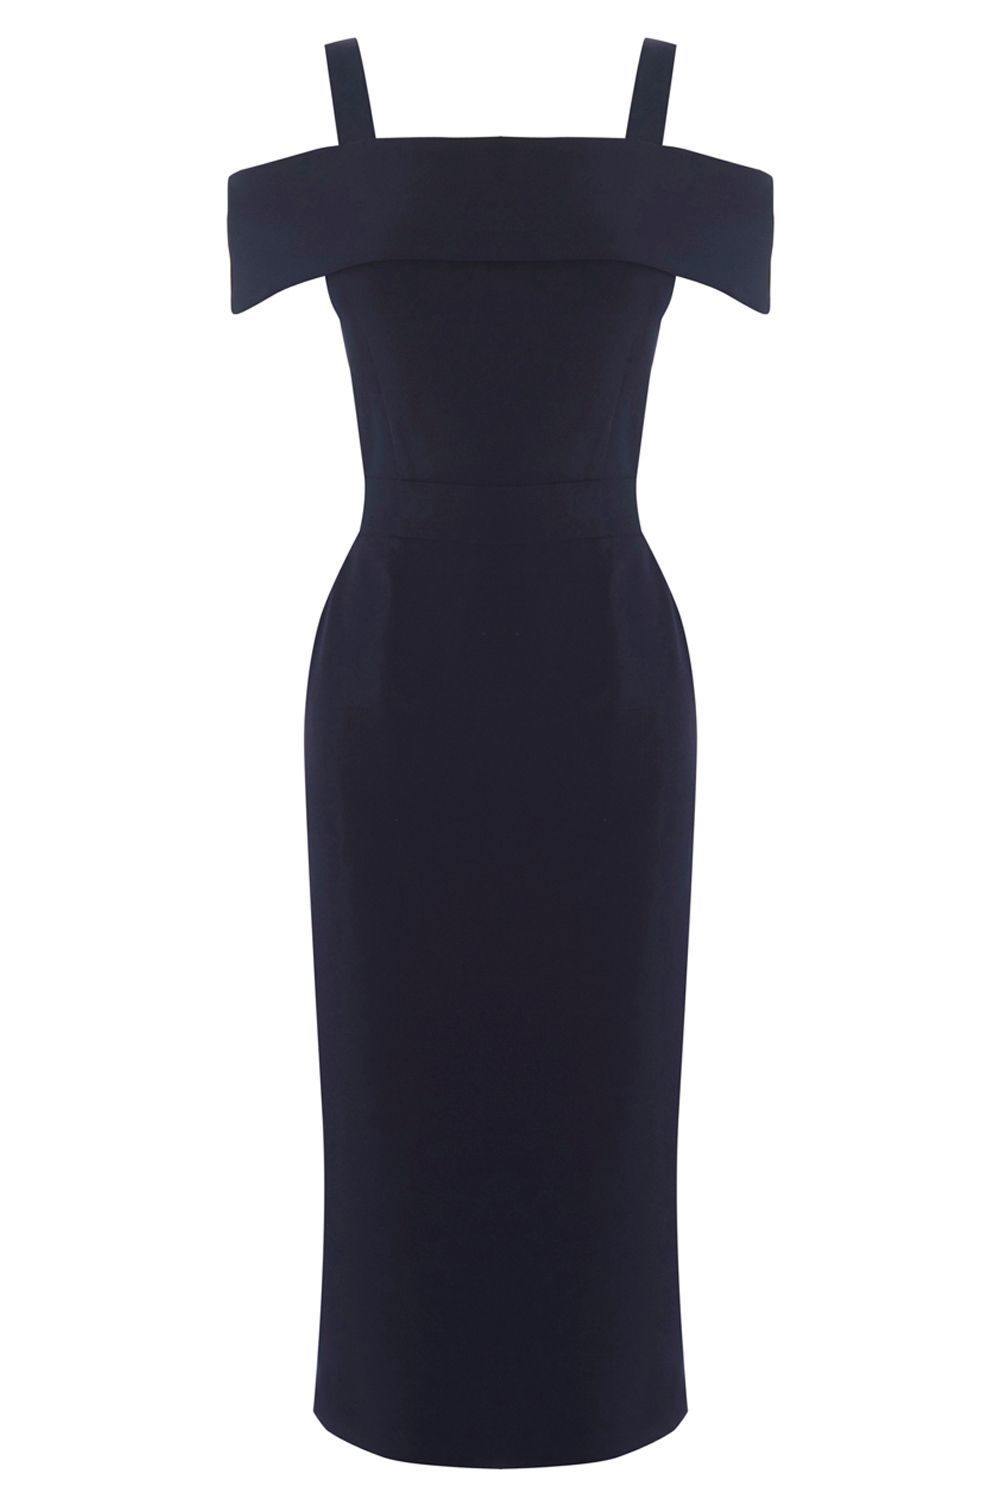 Crepe Off The Shoulder Dress, Navy - style: shift; length: below the knee; fit: tailored/fitted; pattern: plain; hip detail: fitted at hip; predominant colour: navy; occasions: evening, occasion; fibres: polyester/polyamide - 100%; shoulder detail: cut out shoulder; sleeve length: short sleeve; sleeve style: standard; texture group: crepes; neckline: low square neck; pattern type: fabric; season: a/w 2016; wardrobe: event